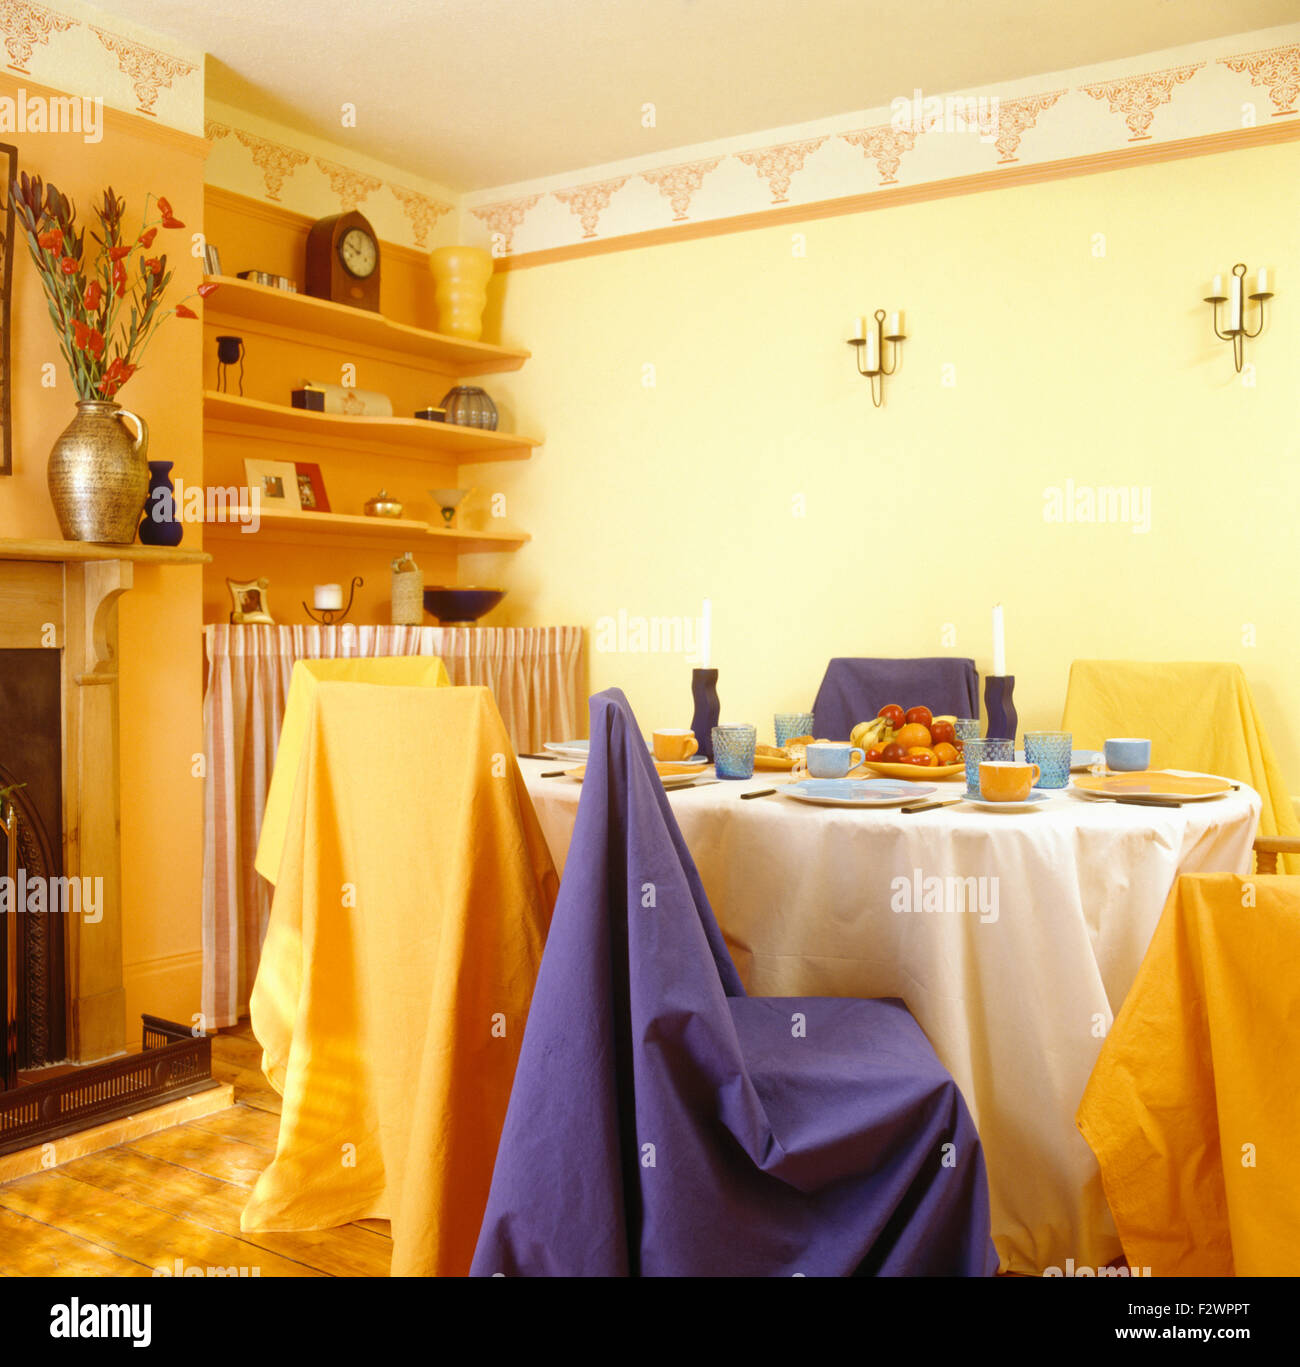 Colourful throws on dining chairs in eighties dining room before renovation - Stock Image